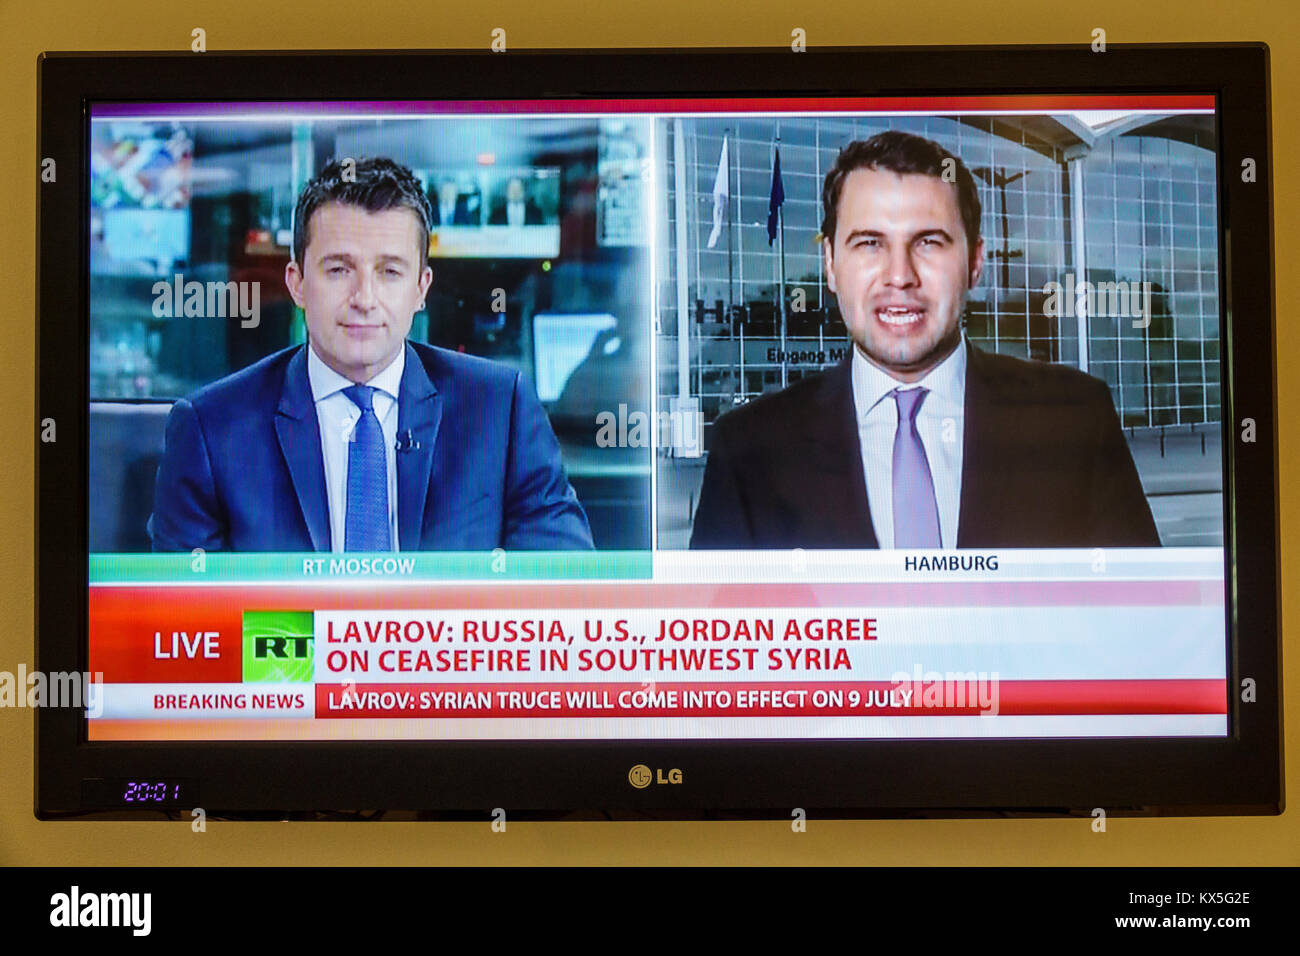 Porto Portugal television ecran plat moniteur tv RT Russia Today channel programme breaking news journaliste des Photo Stock